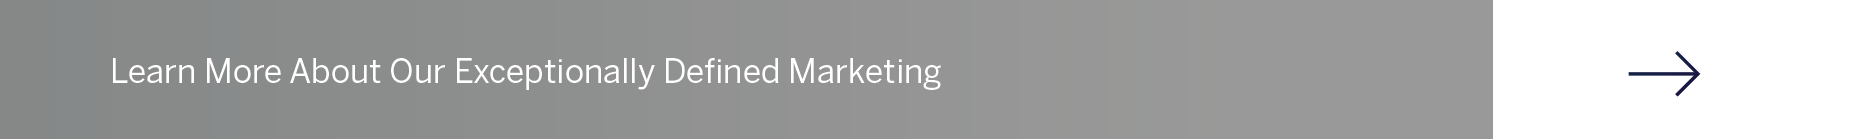 Learn more about our exceptionally defined marketing